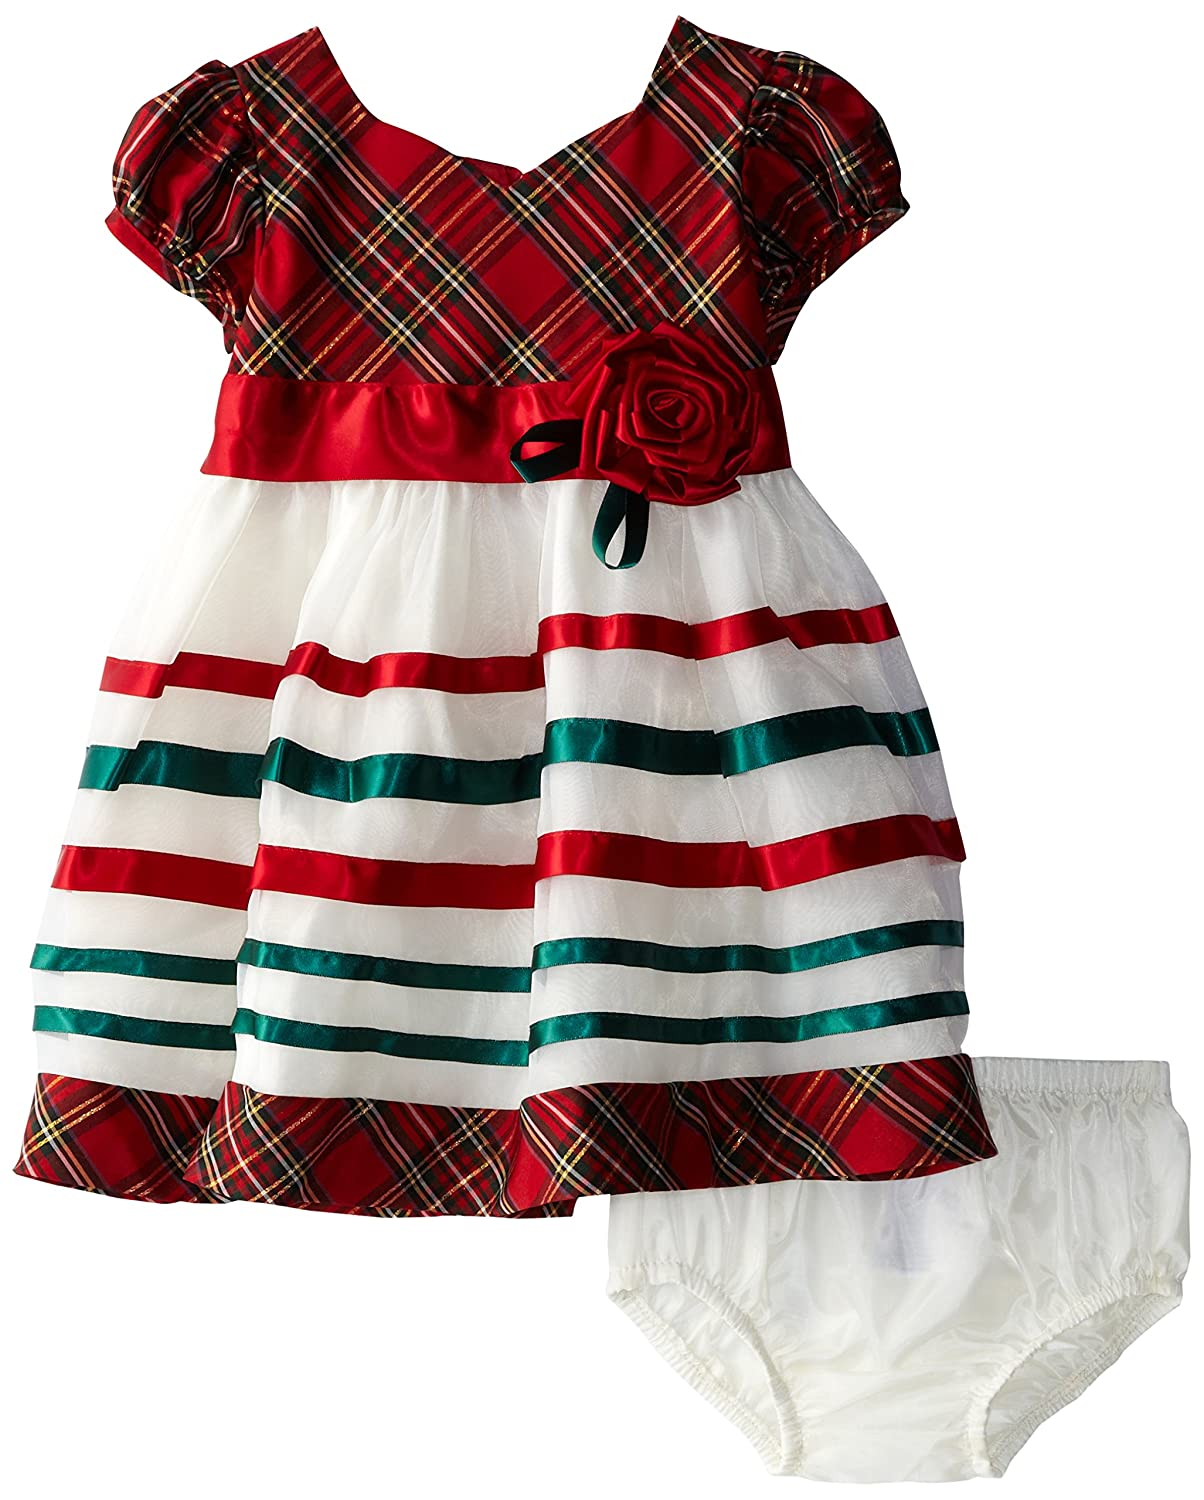 amazoncom bonnie baby baby girls taffeta plaid organza dress red 24 months clothing - 12 Month Christmas Dress